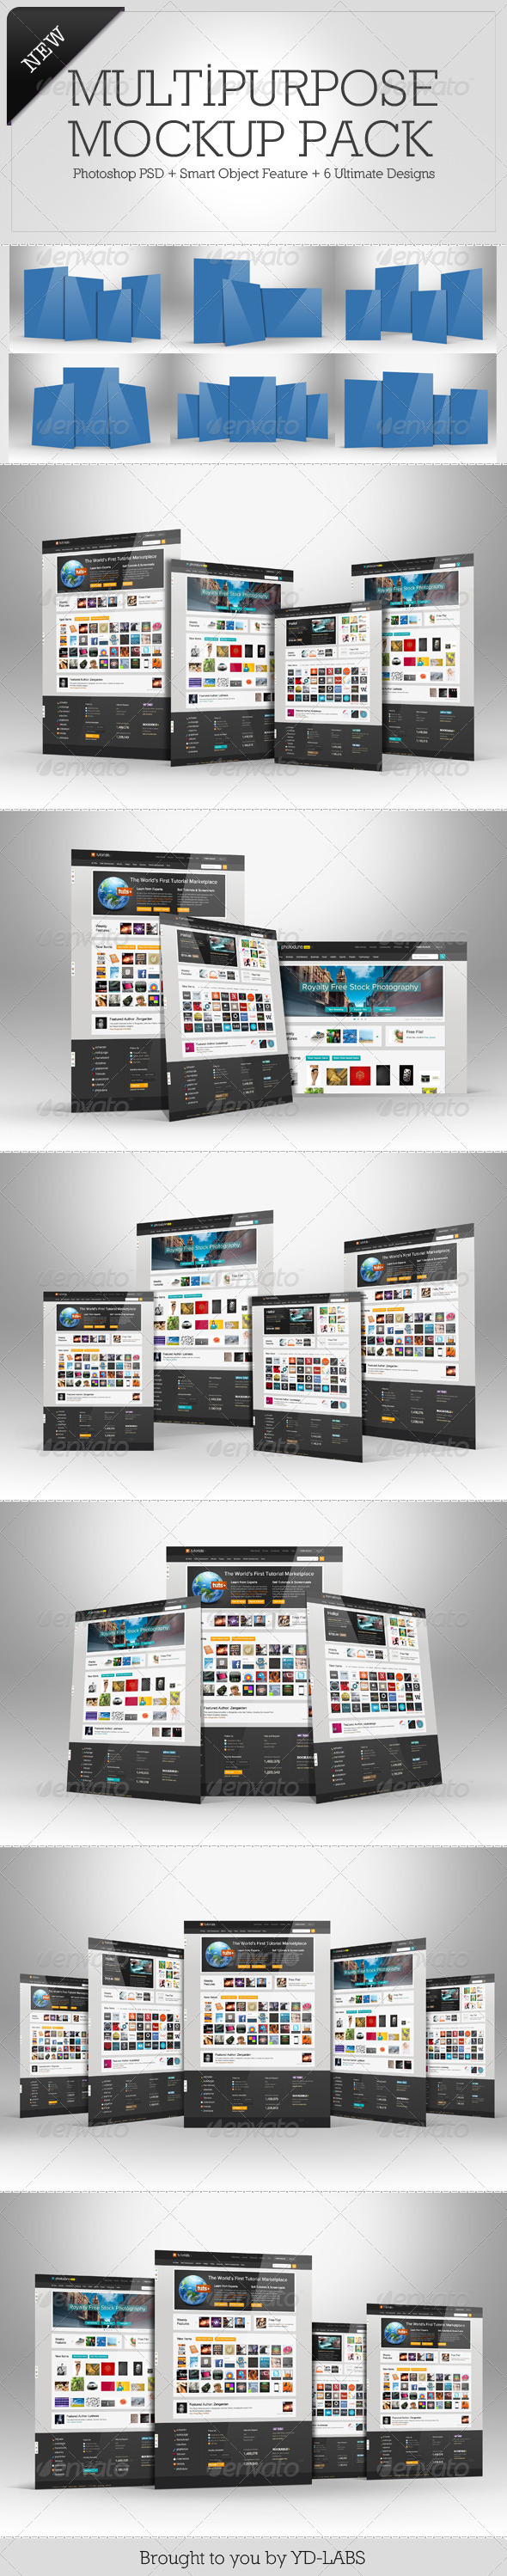 Multipurpose Mockup Pack 3 - Miscellaneous Displays